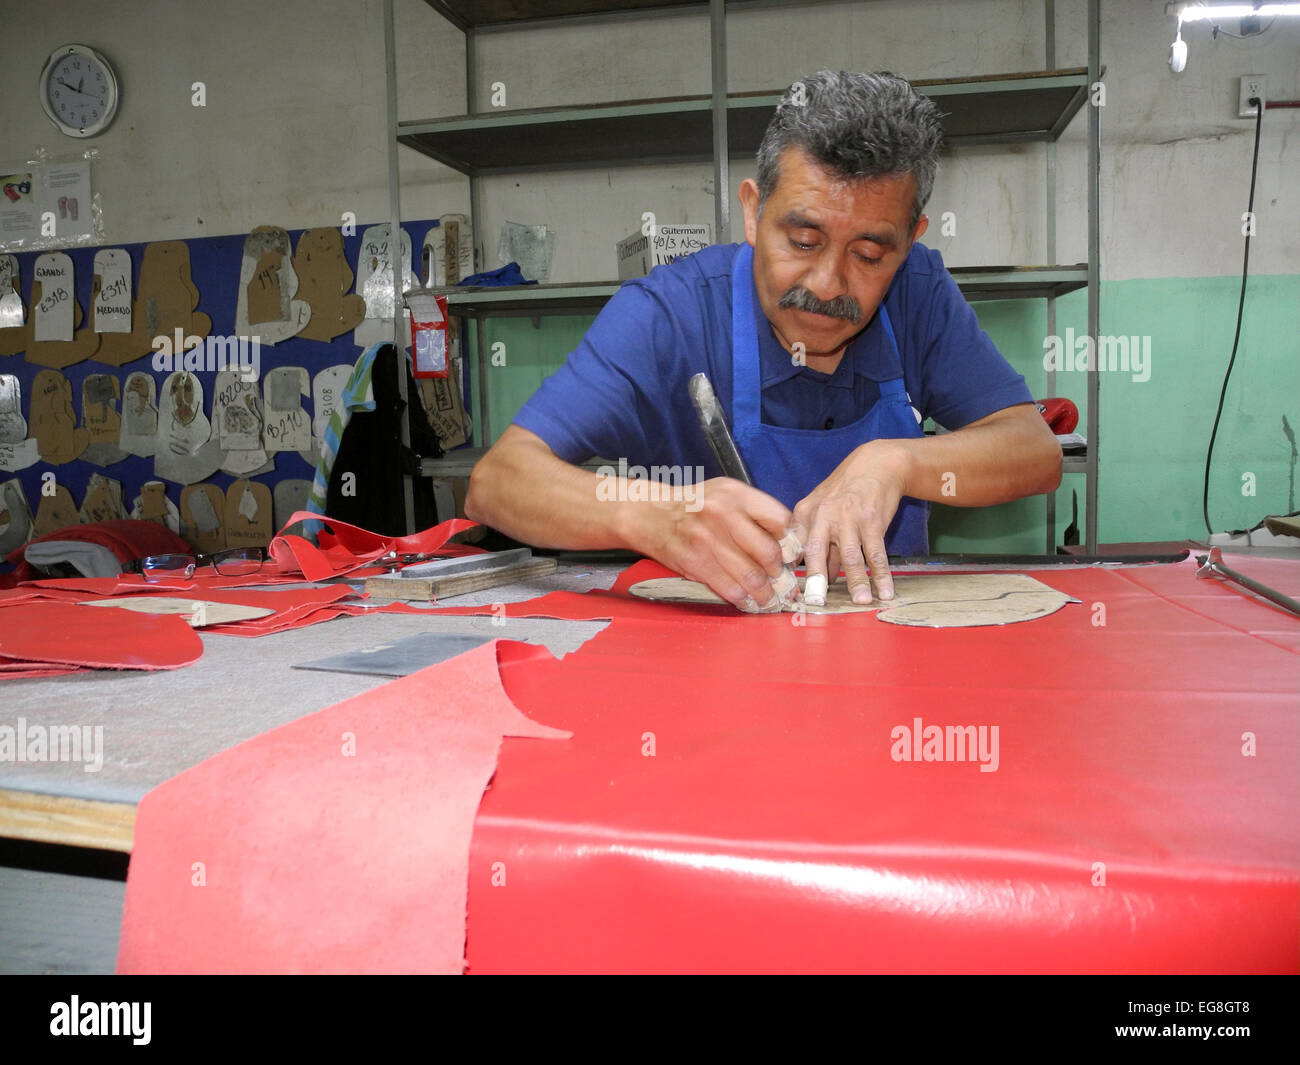 A staff member of manufacturer of boxing gloves Cleto Reyes works on the production of a professional boxing glove - Stock Image